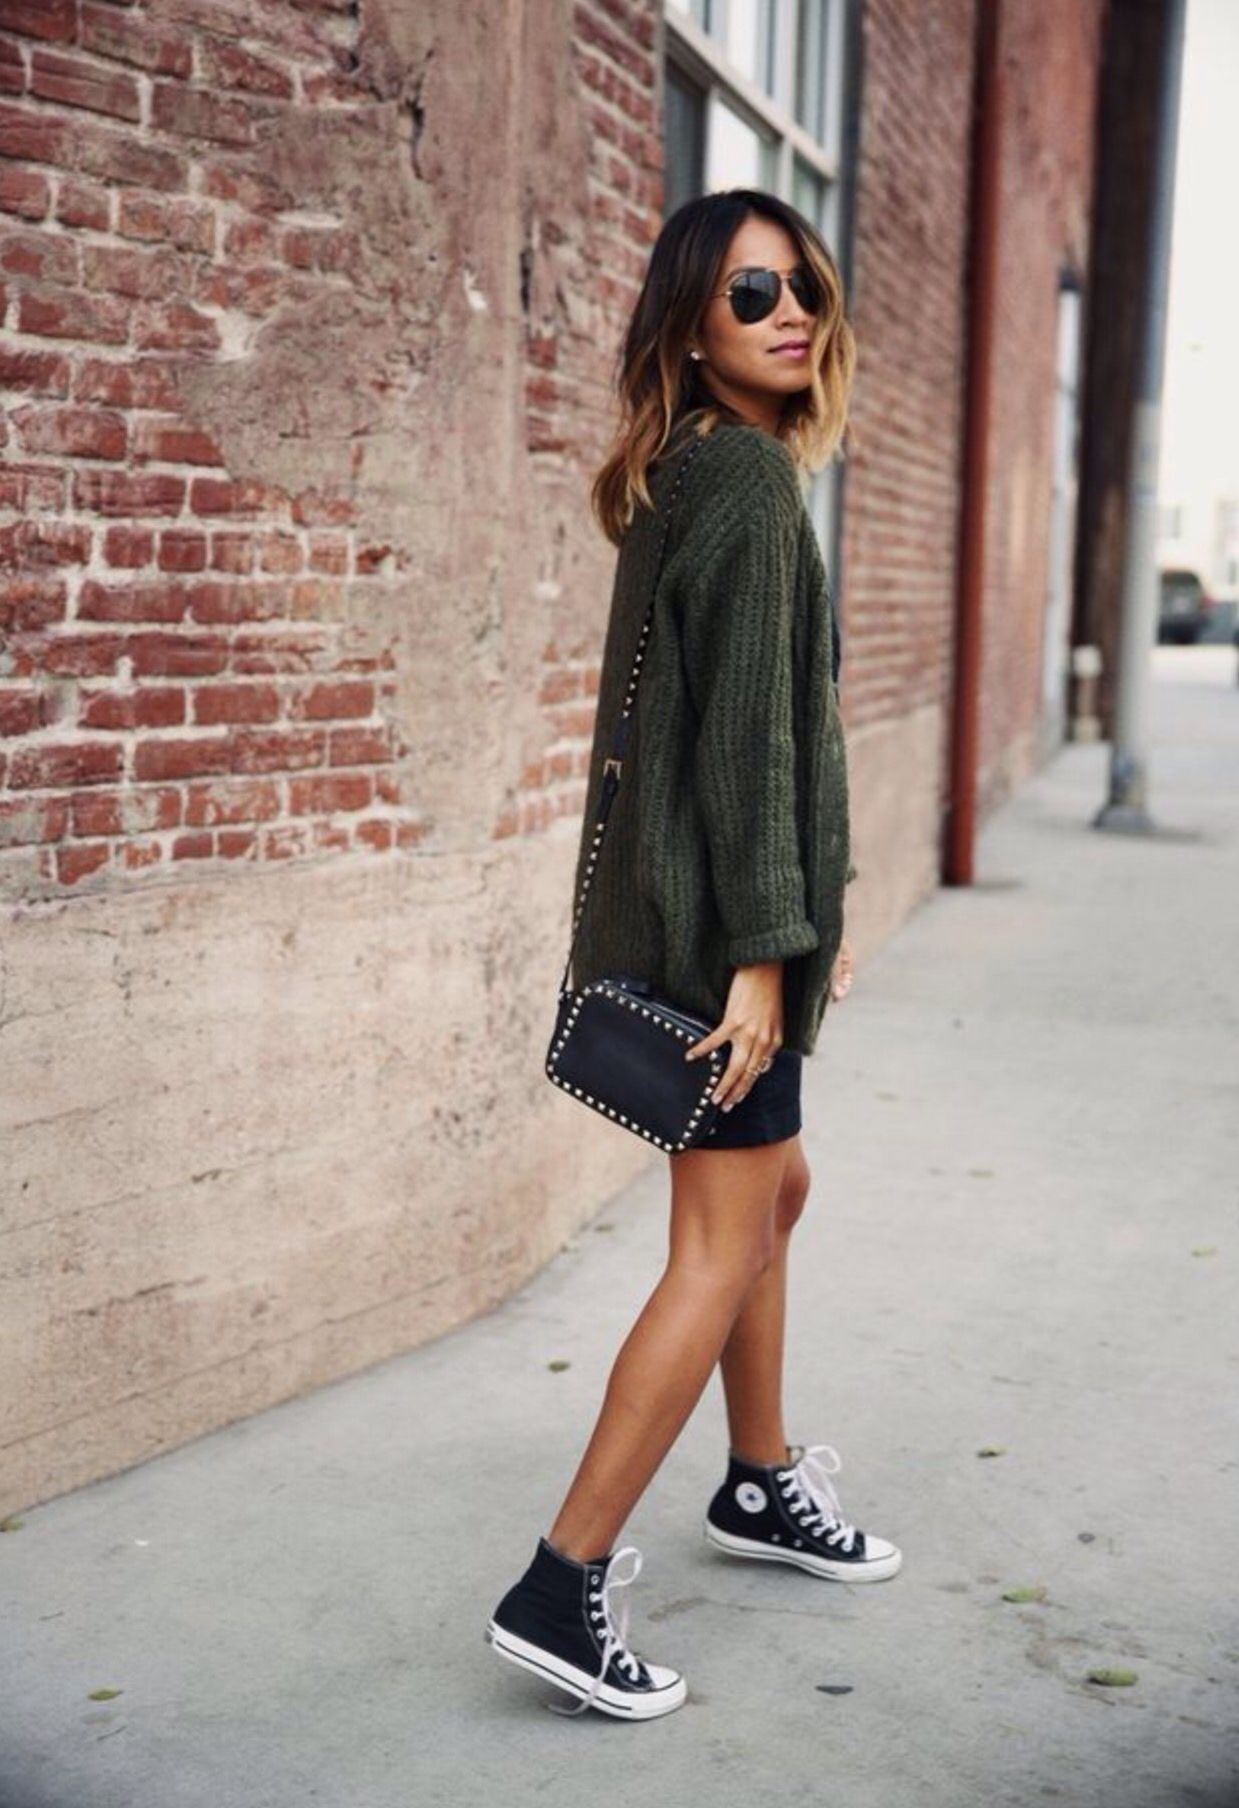 Fashion style All high black top converse outfit for lady